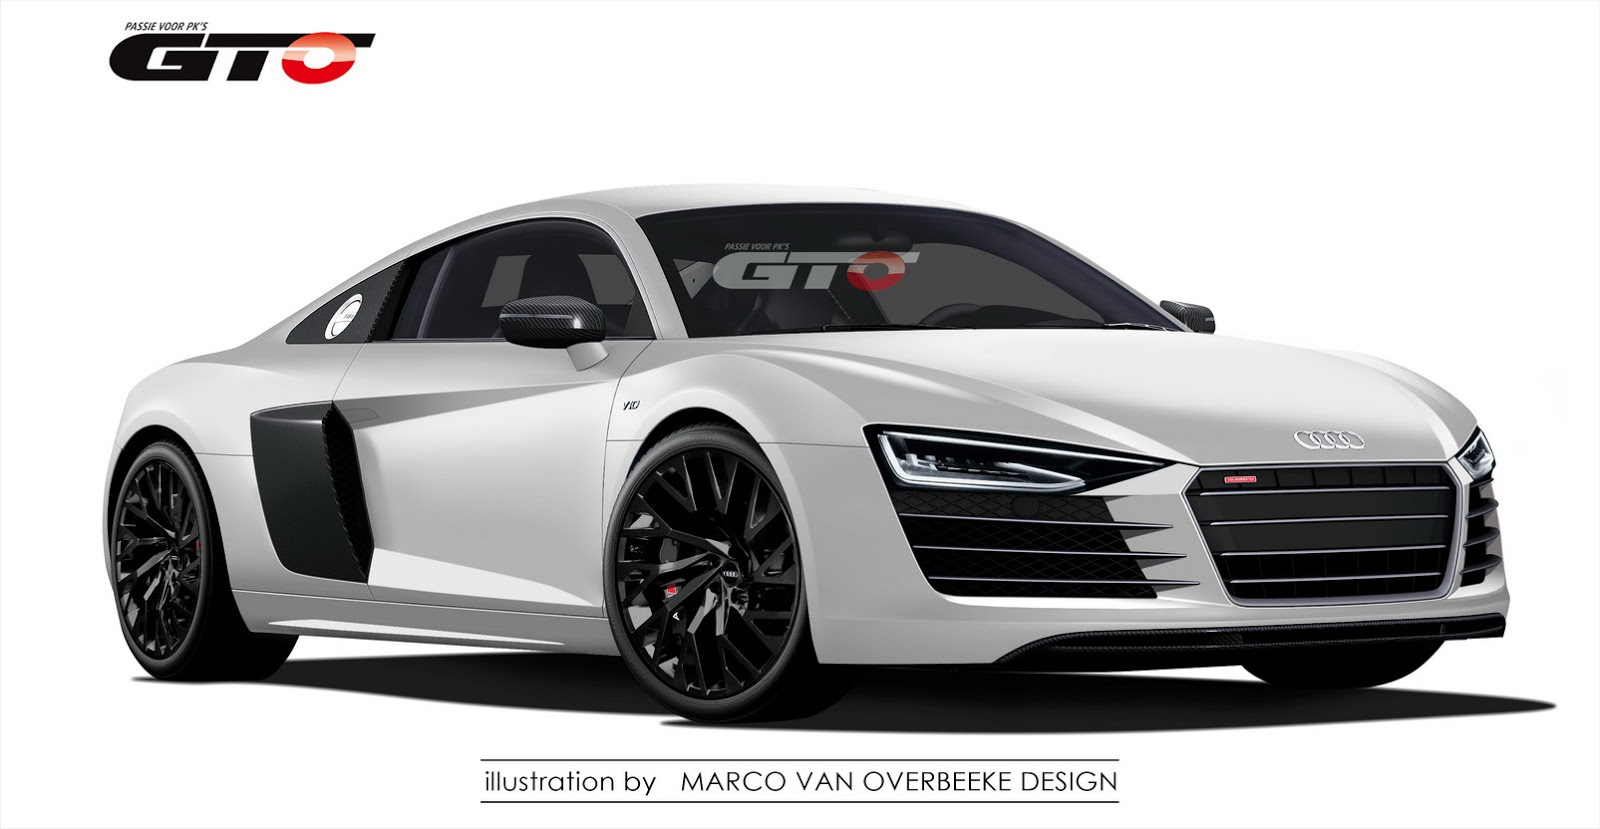 new 2016 audi r8 illustration looks like the real thing